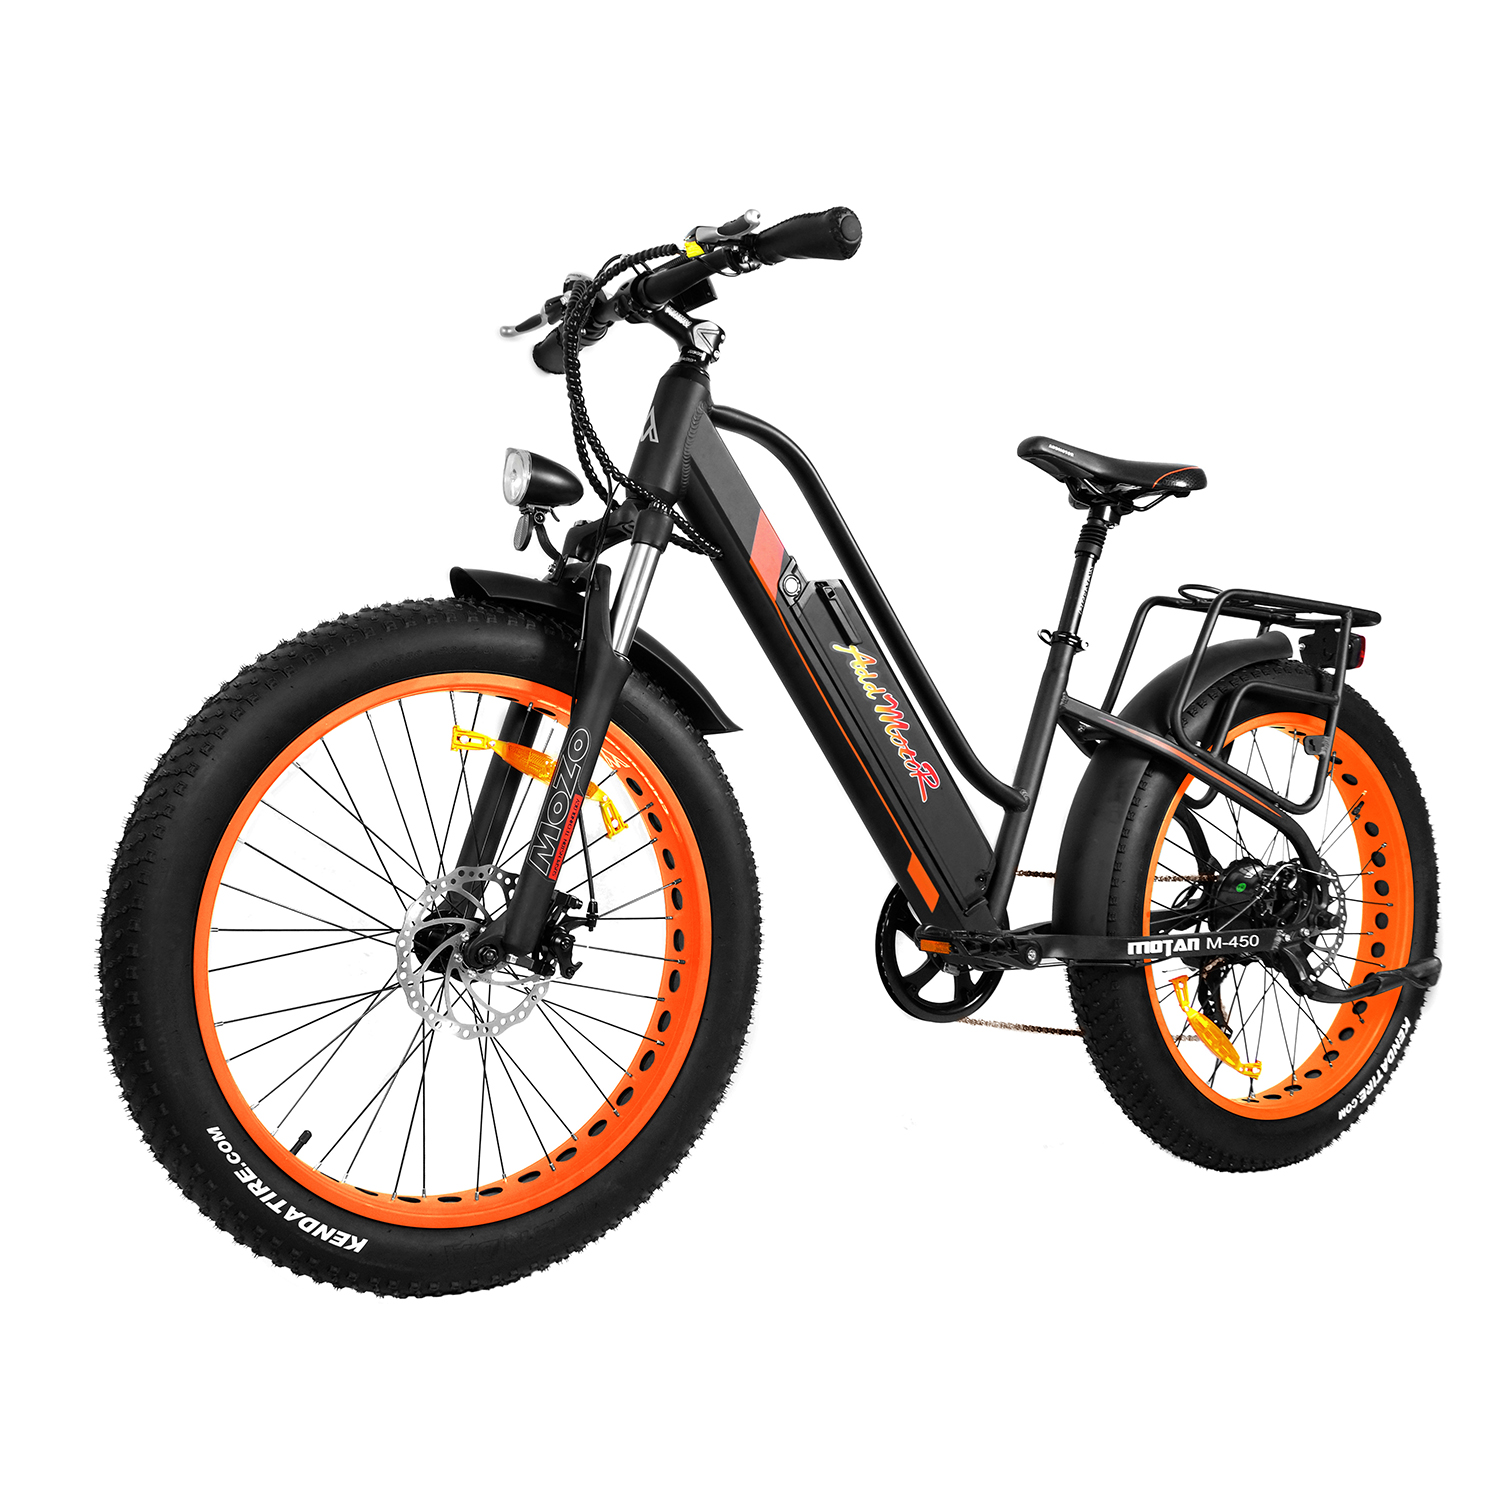 Addmotor MOTAN Electric Bicycle Bike 26In Fat Tire Women Electric Bike Full Suspension 500W Motor M-450 2018 E-bike